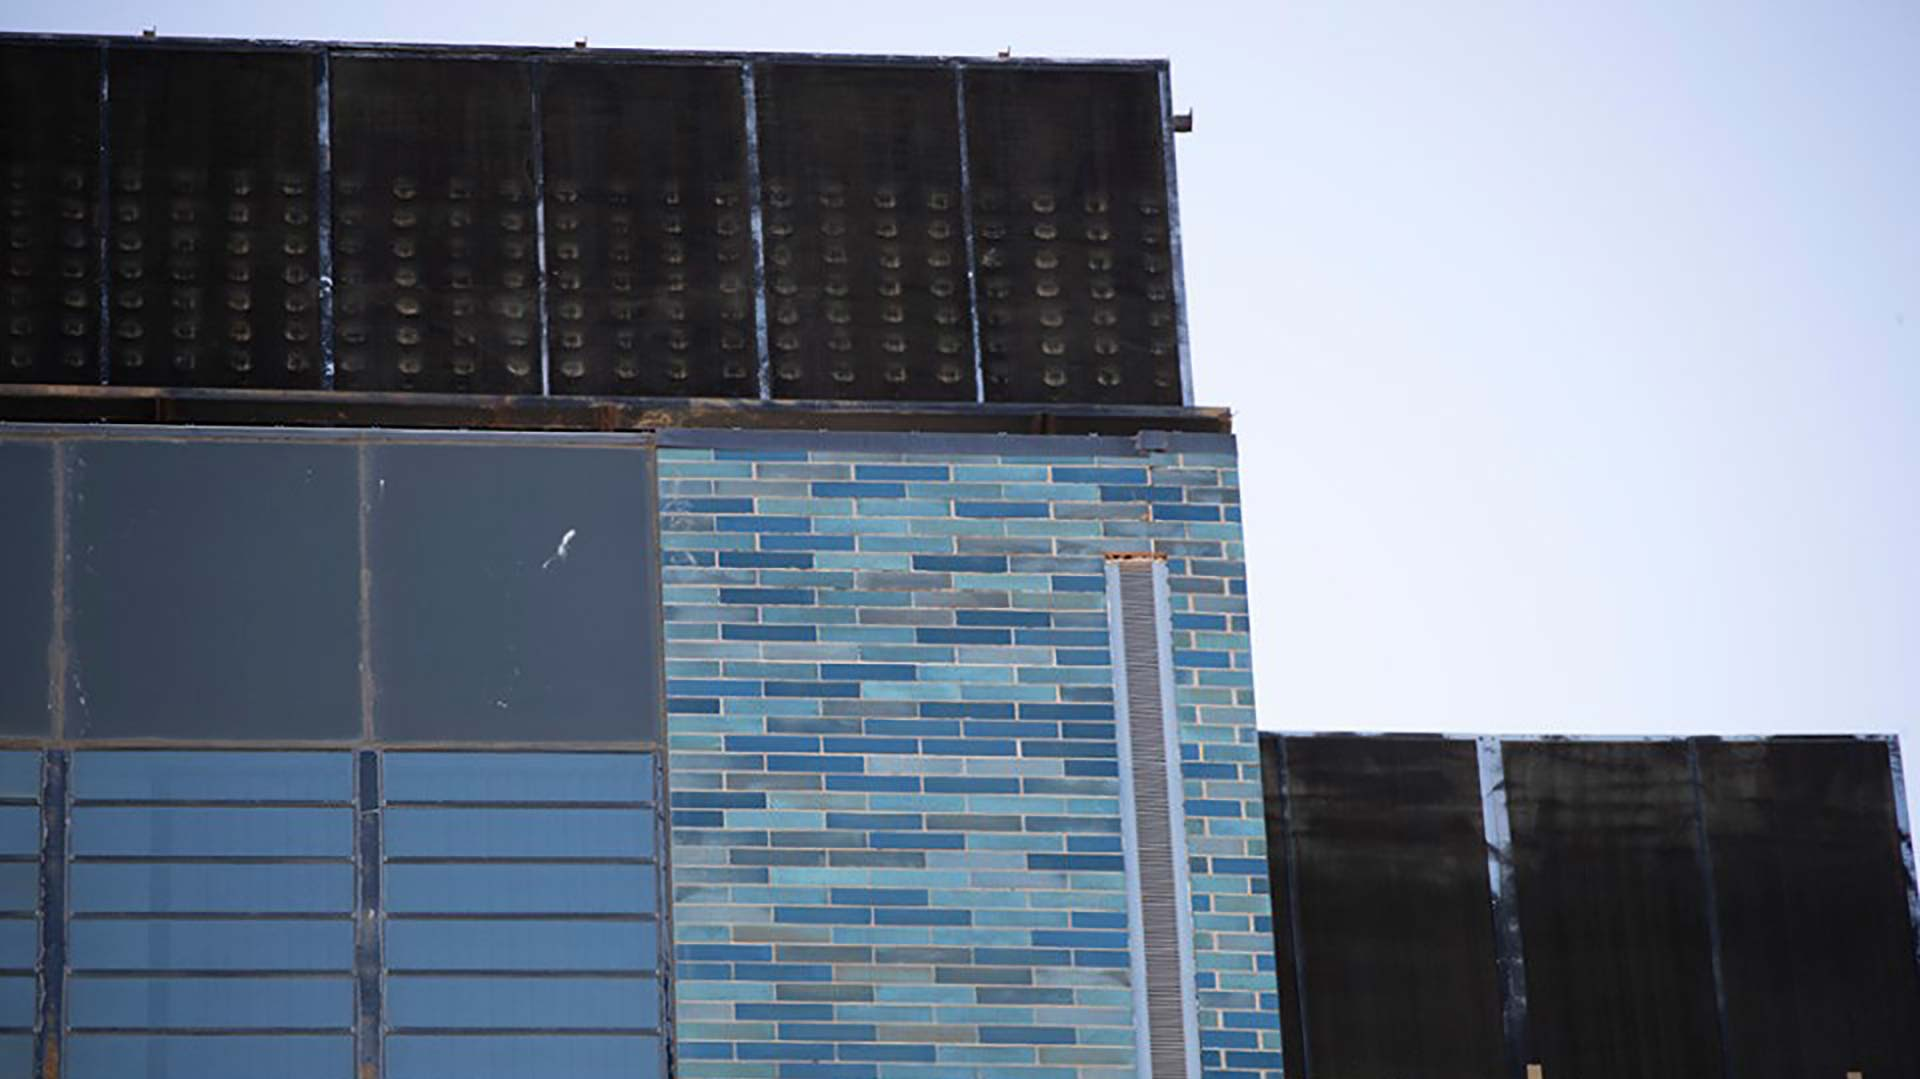 This image distributed by Pima County via social media on Aug. 14, 2019 shows a part of the county's Legal Services Building, where distinctive blue-green bricks have dislodged. Efforts are underway to find and repair loose bricks on the the building, built in 1967.